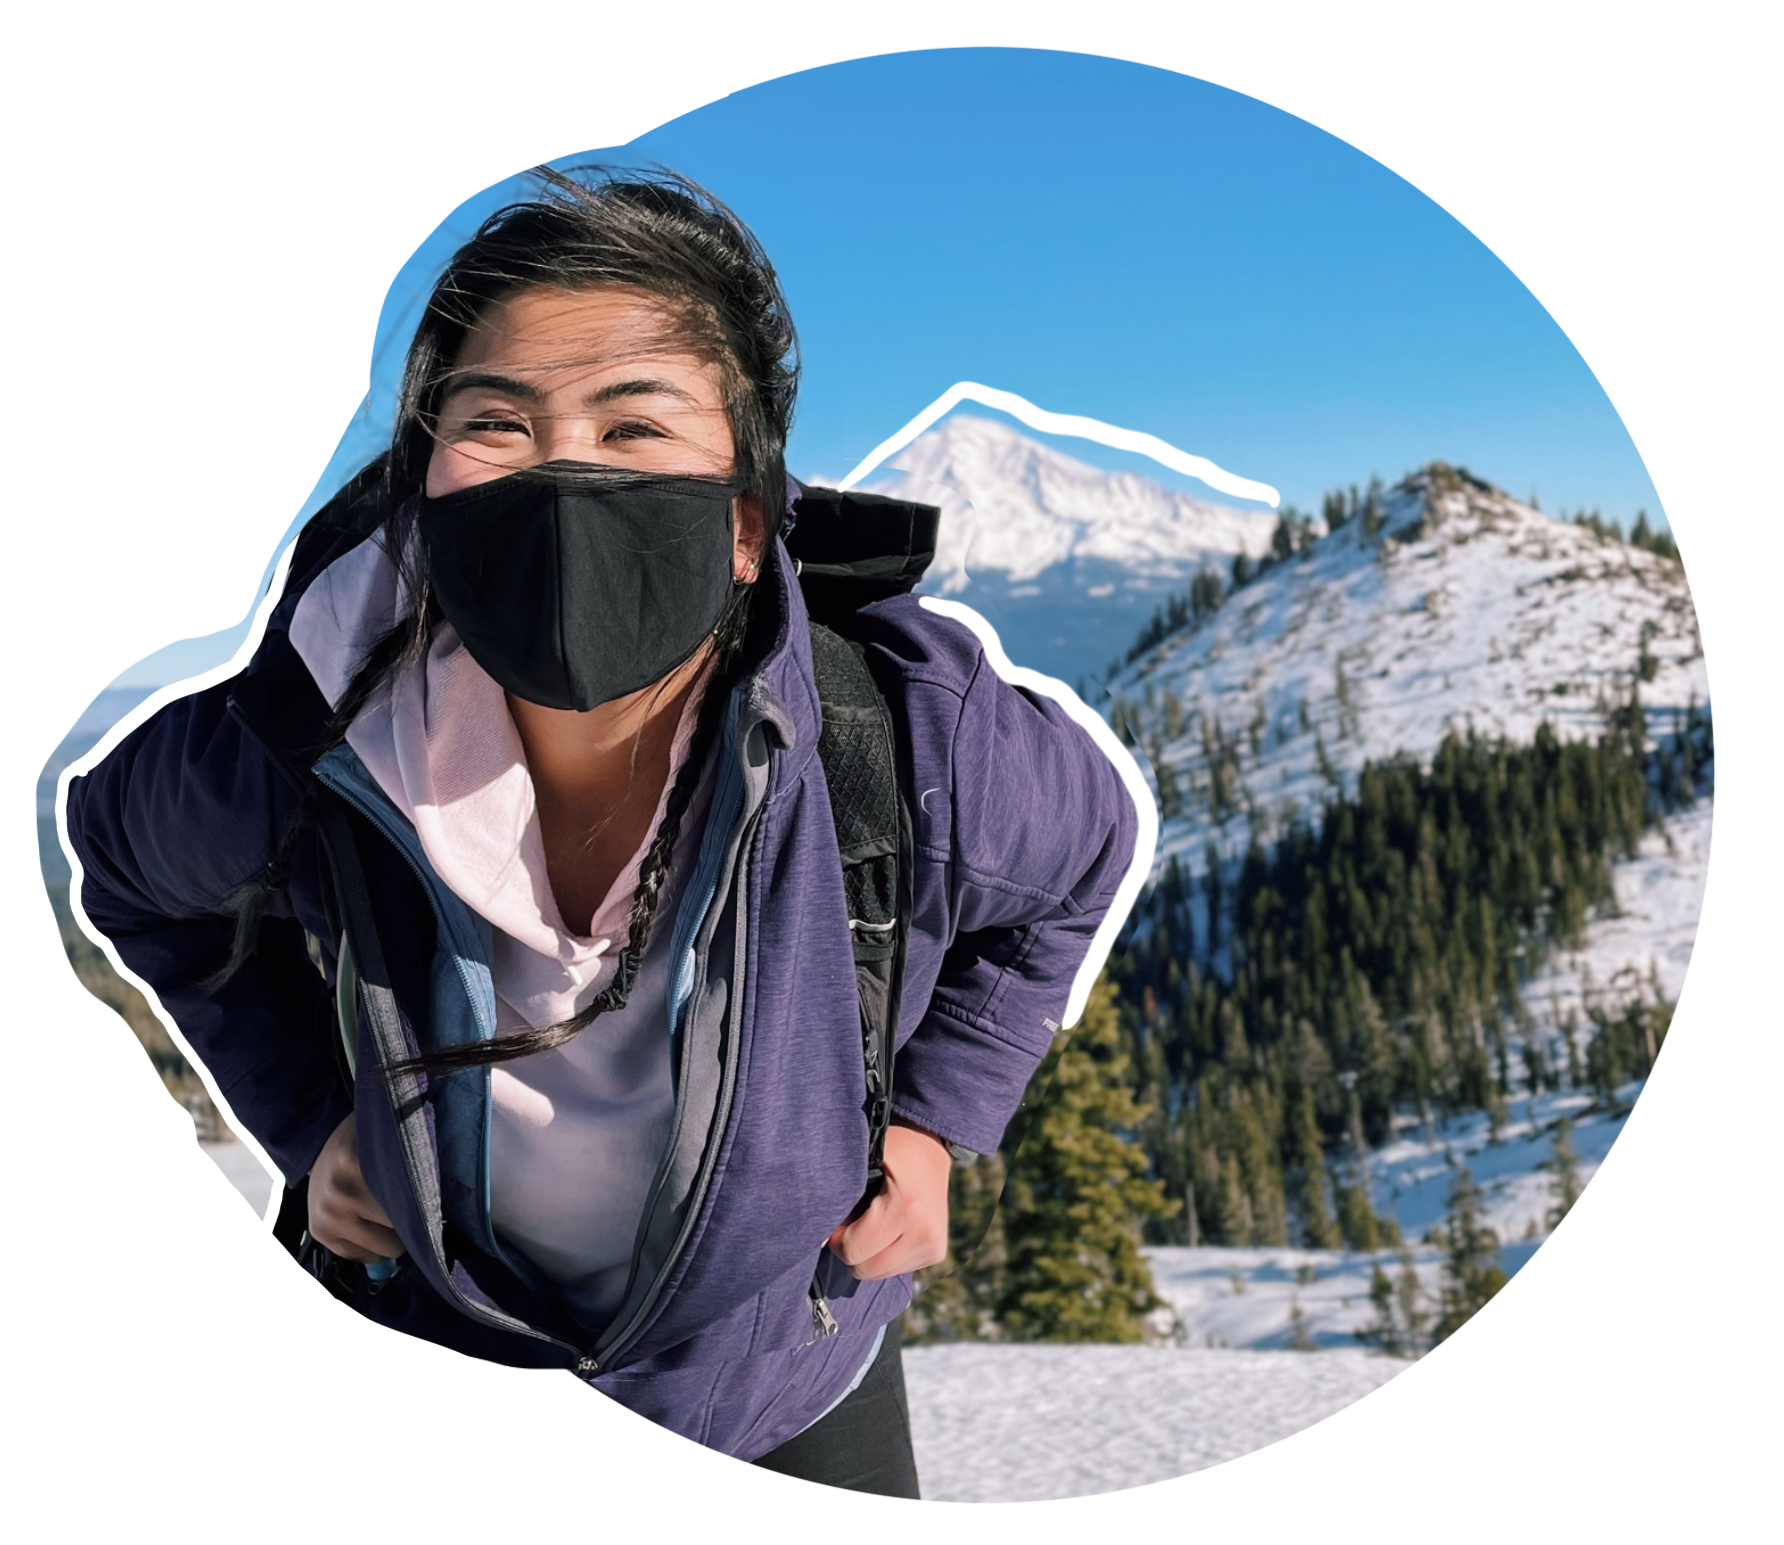 Marie wearing a mask in the mountains